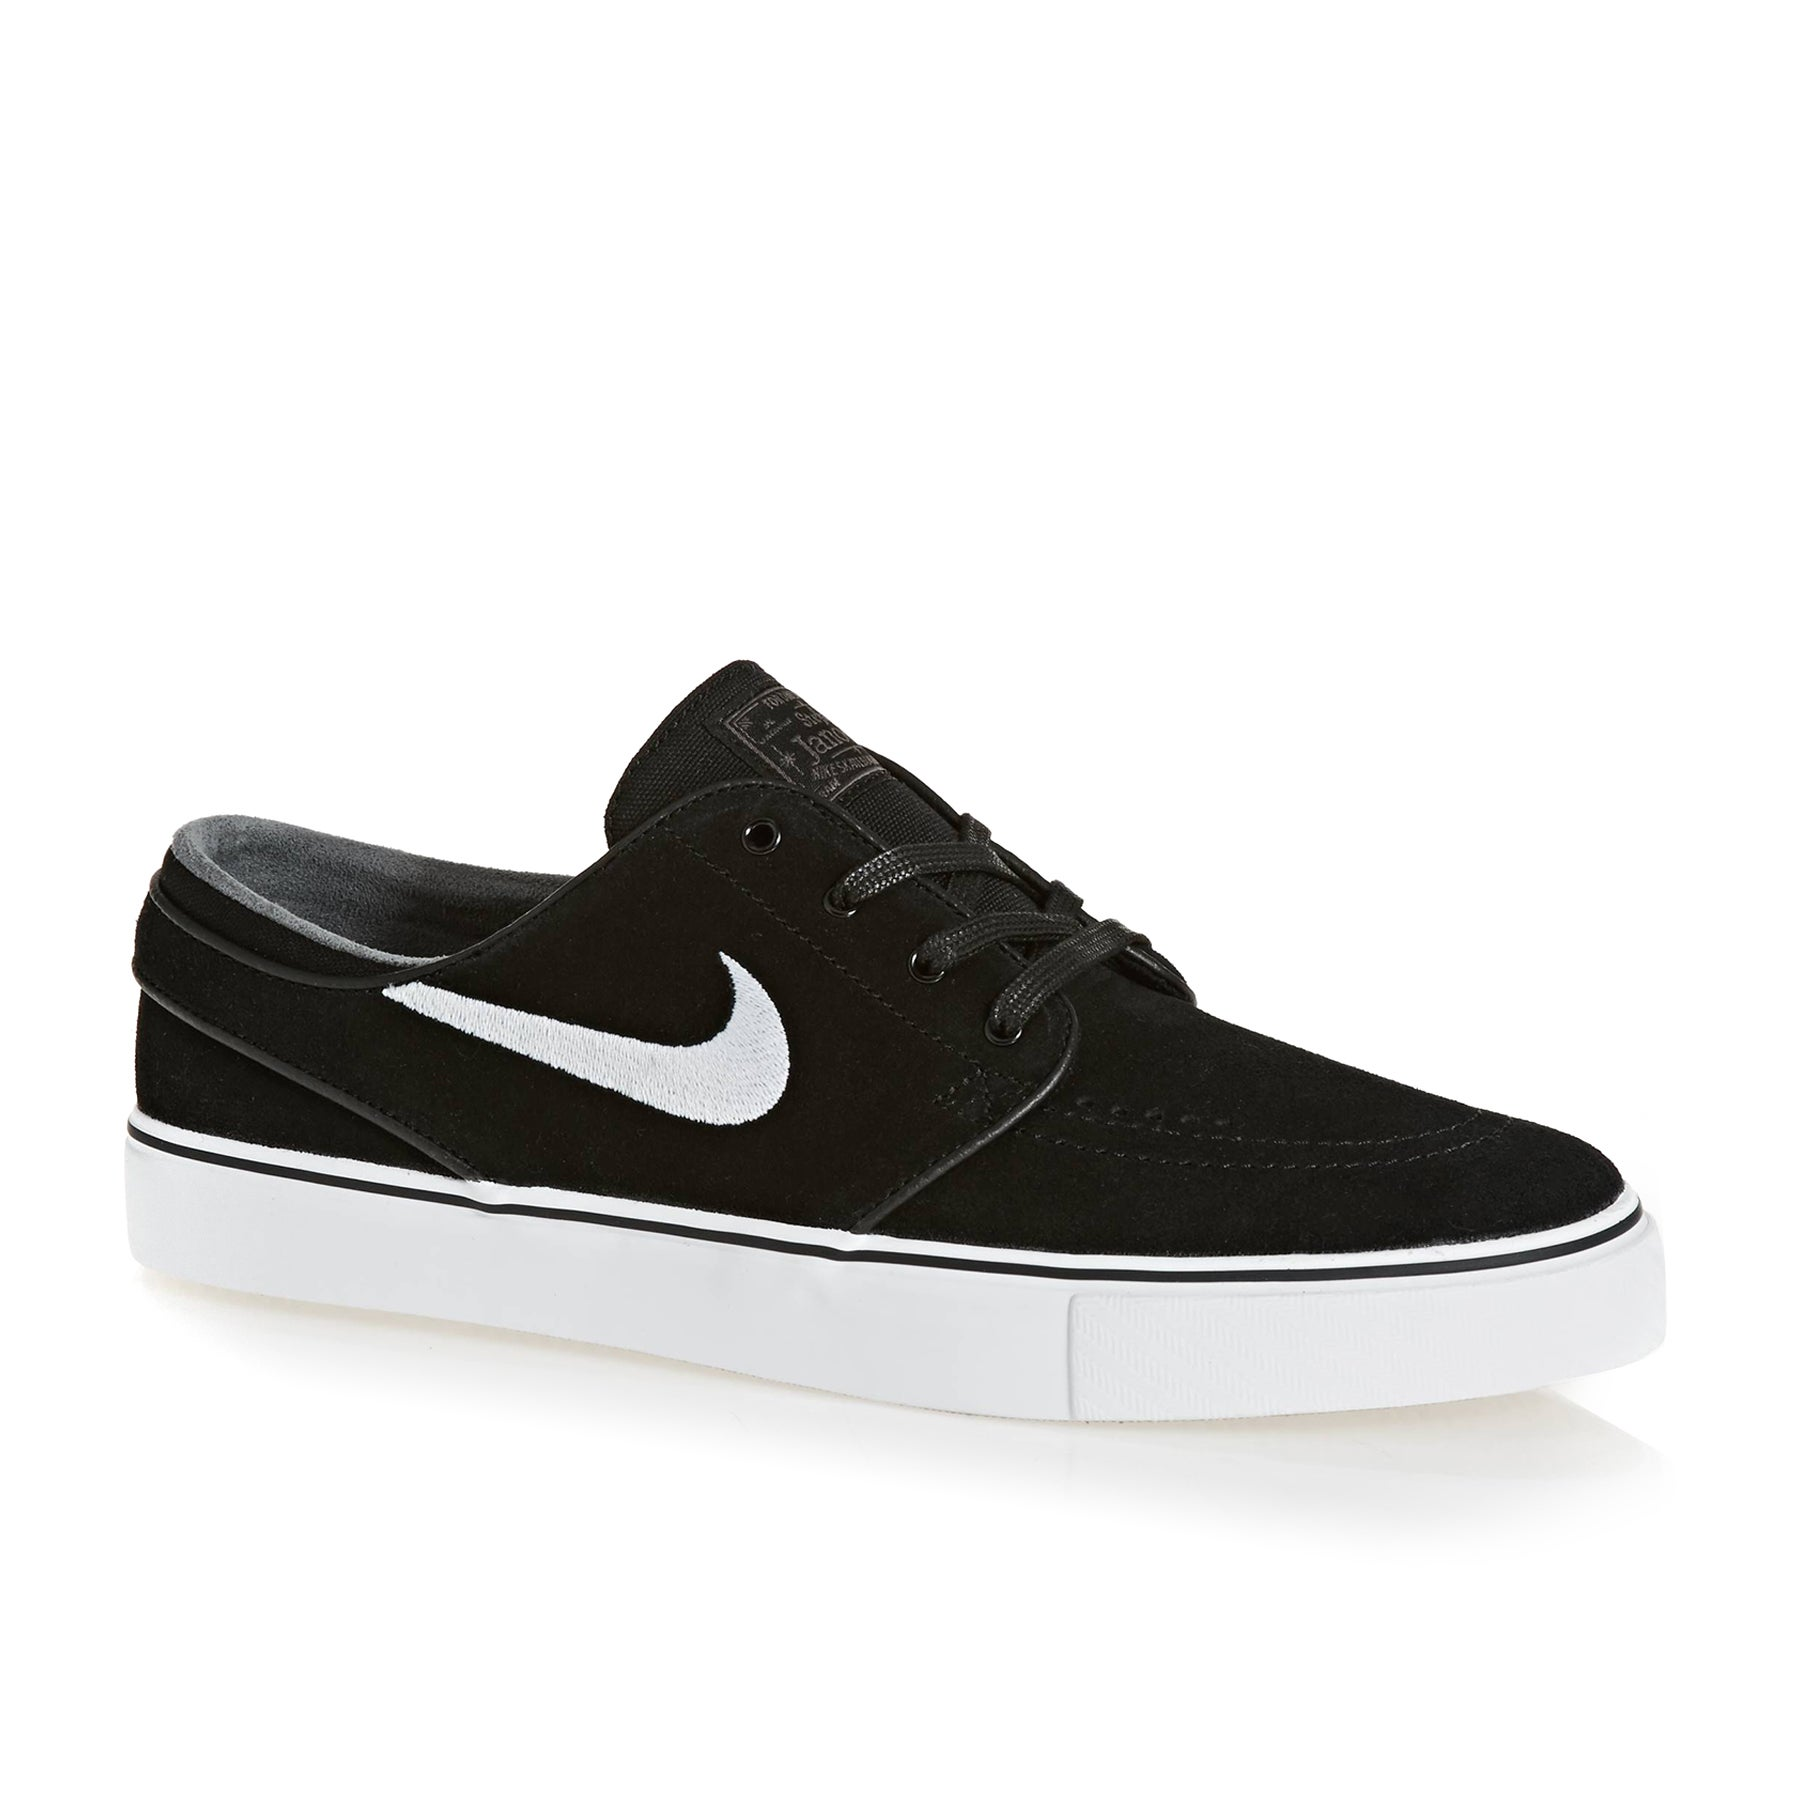 50fc2835dc95 Nike SB Zoom Stefan Janoski Shoes. Black White-Thunder Grey-Gum ...